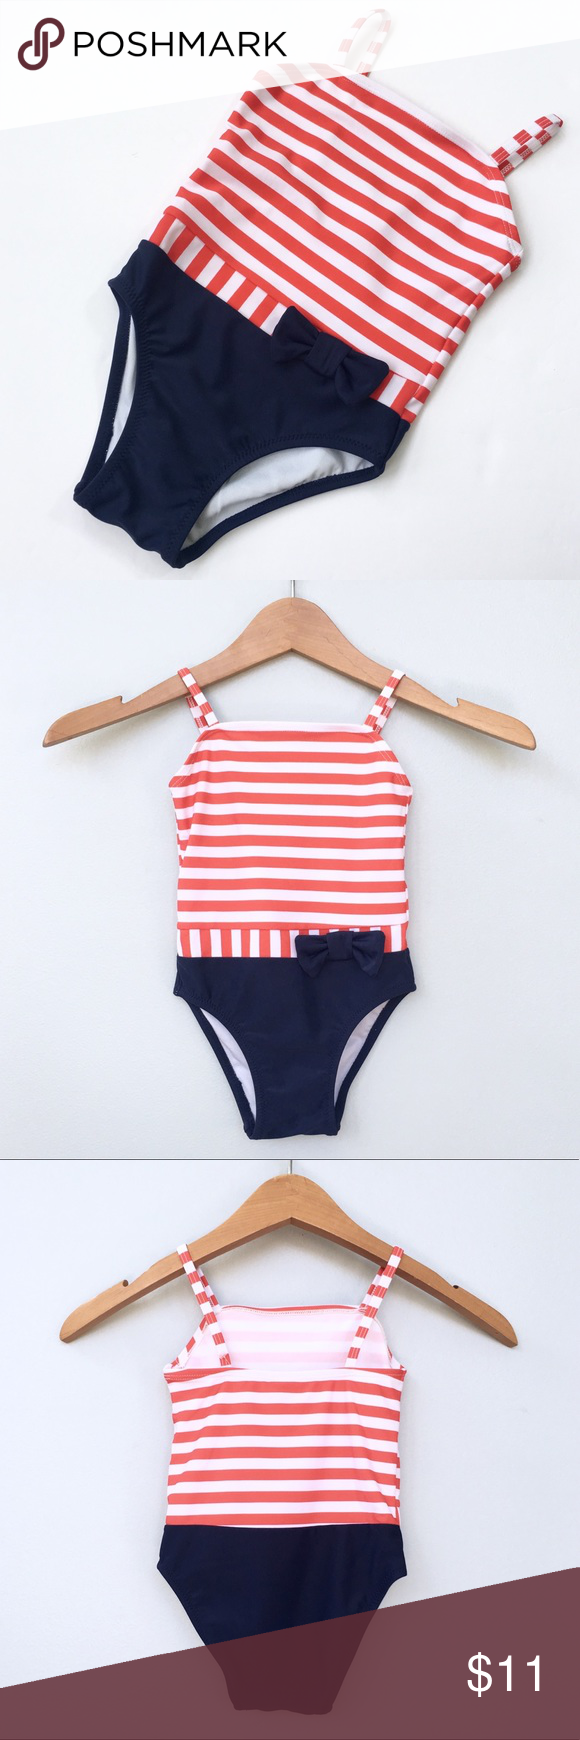 fa9d922b75f Circo Red & White Striped & Navy Bathing Suit Brand new with tags! Adorable  red